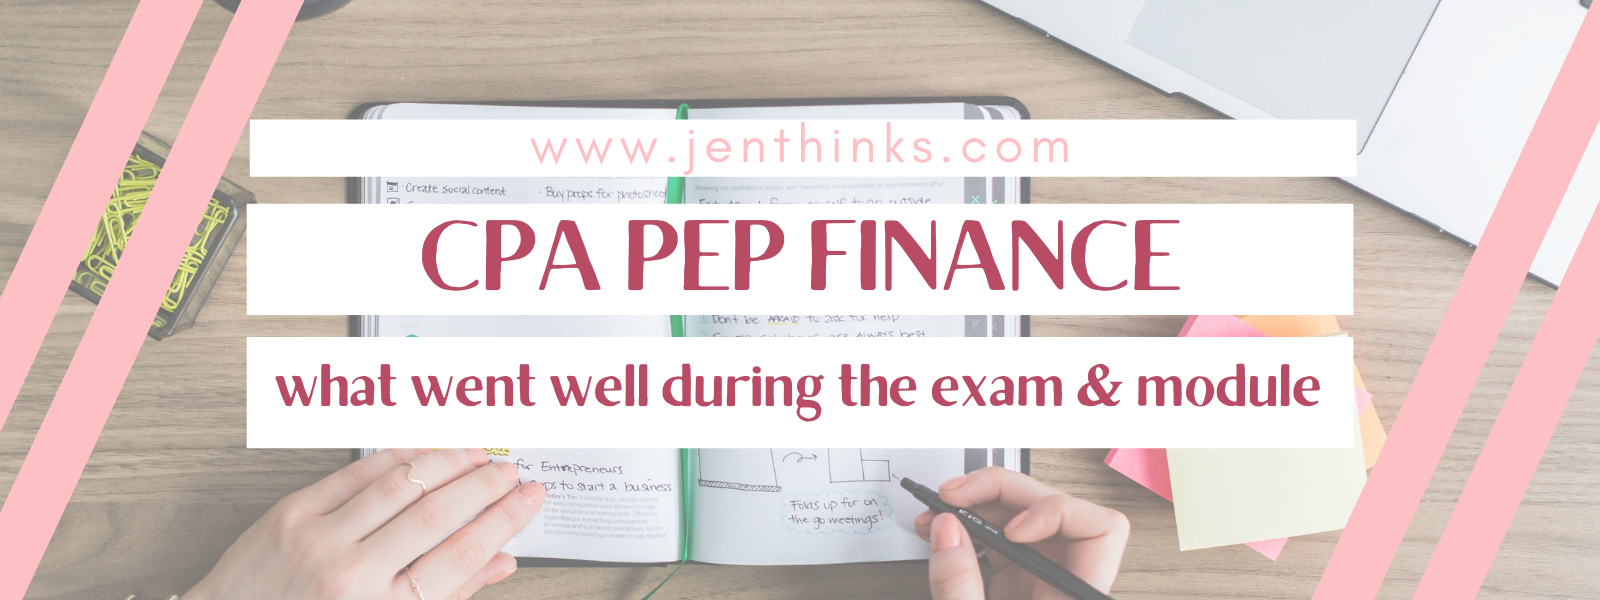 CPA Finance what went well during exam